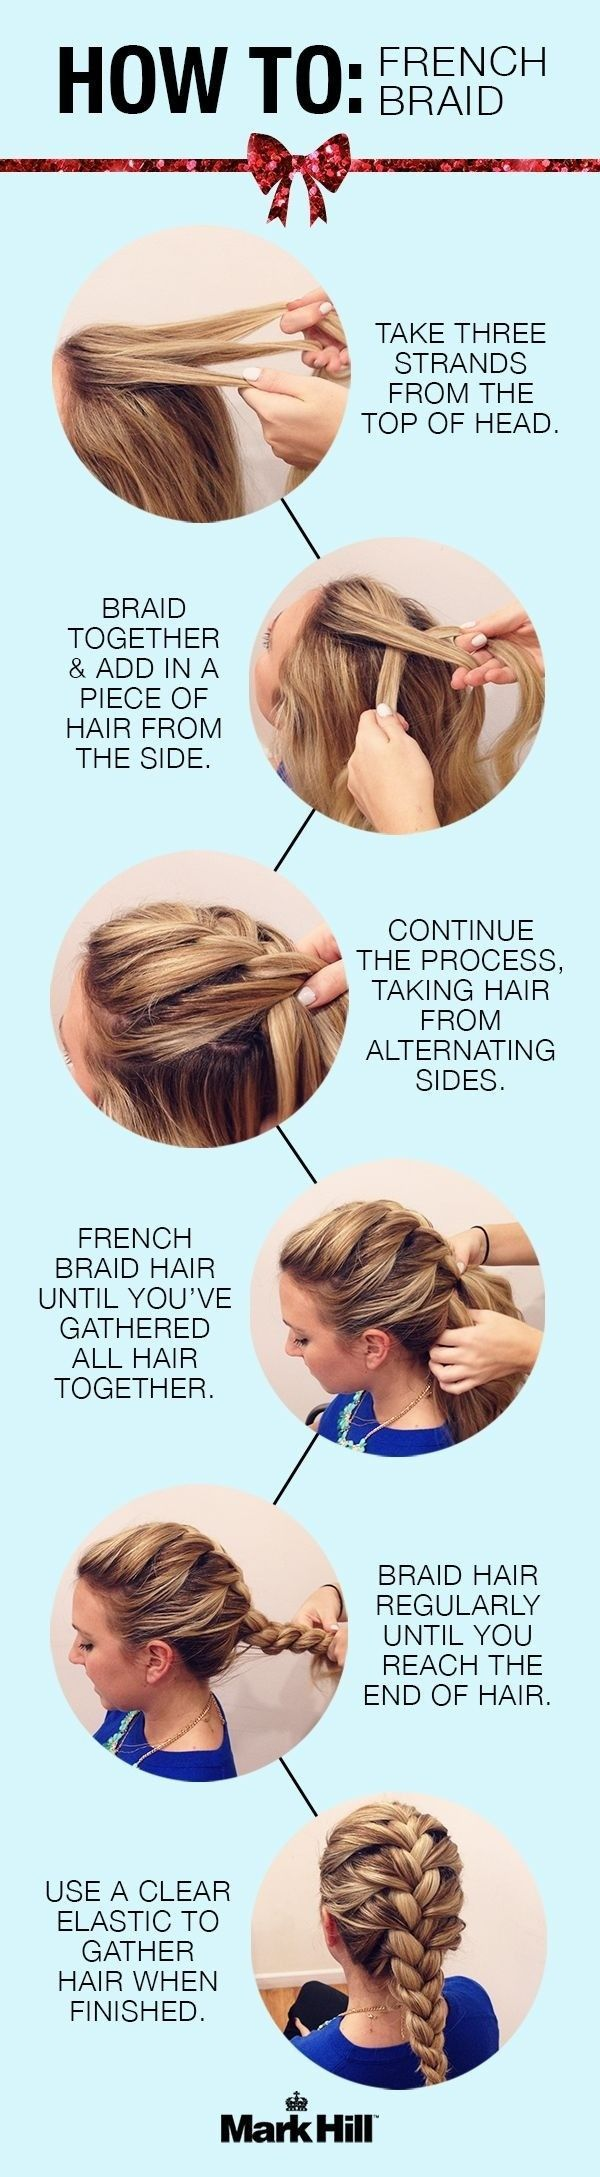 554 Best Quick Easy Hairstyles Images On Pinterest Hairstyle Pertaining To French Braid